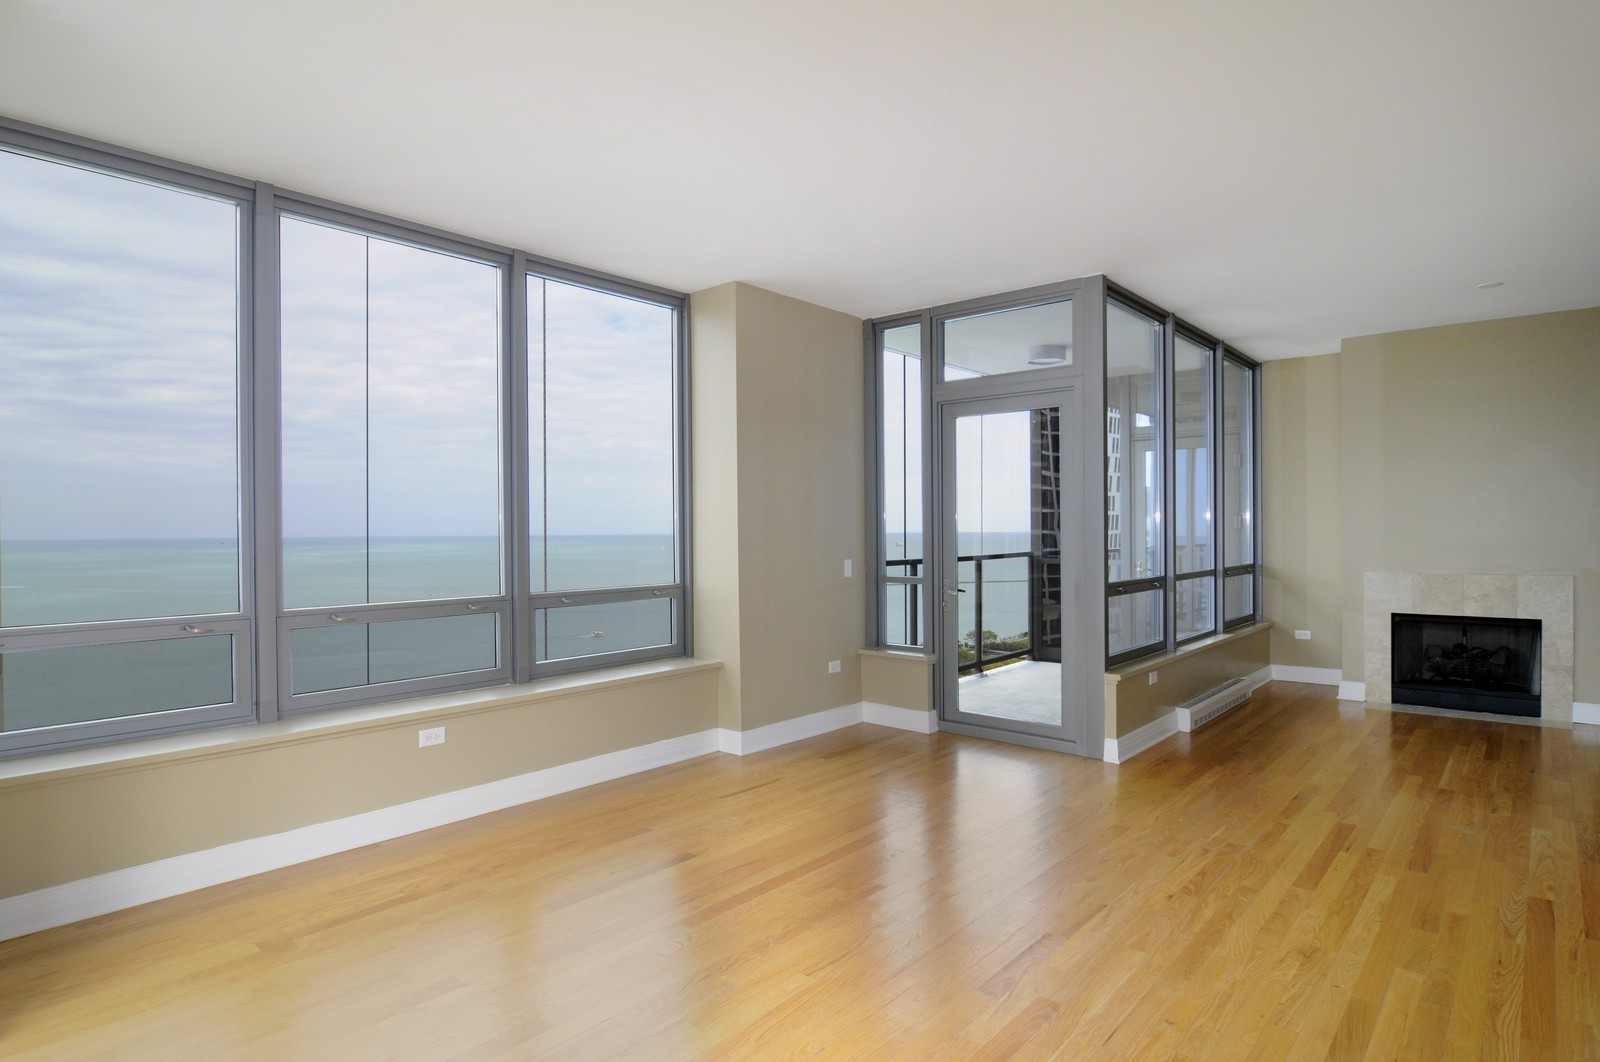 Real Estate Photography - 600 N Lake Shore Dr, Unit 2601, Chicago, IL, 60611 - Living Room